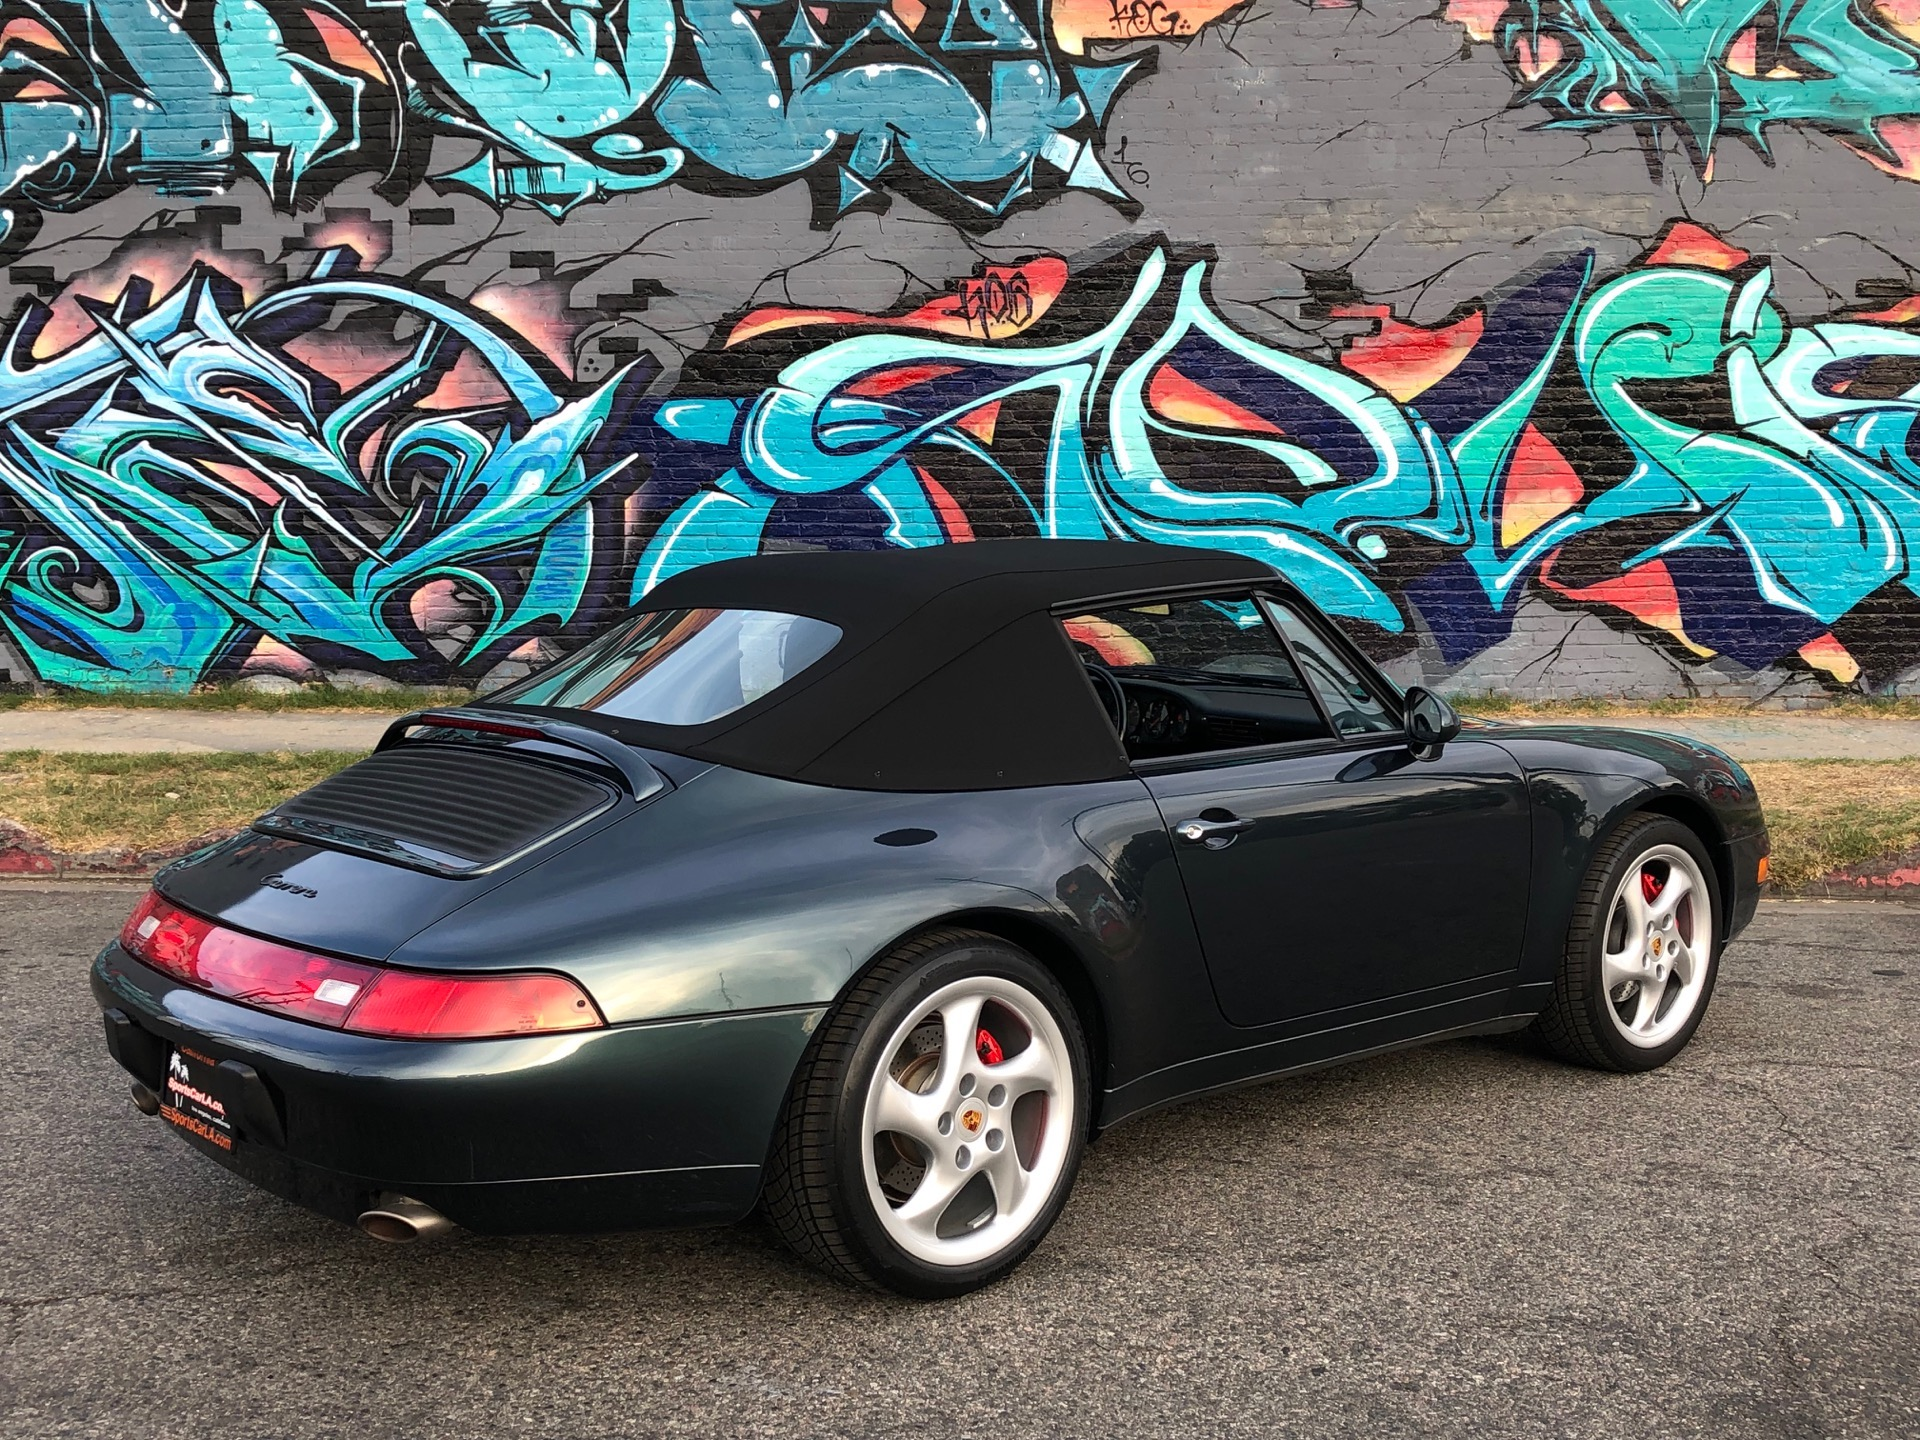 Used-1995-Porsche-911-Carrera-2dr-Convertible